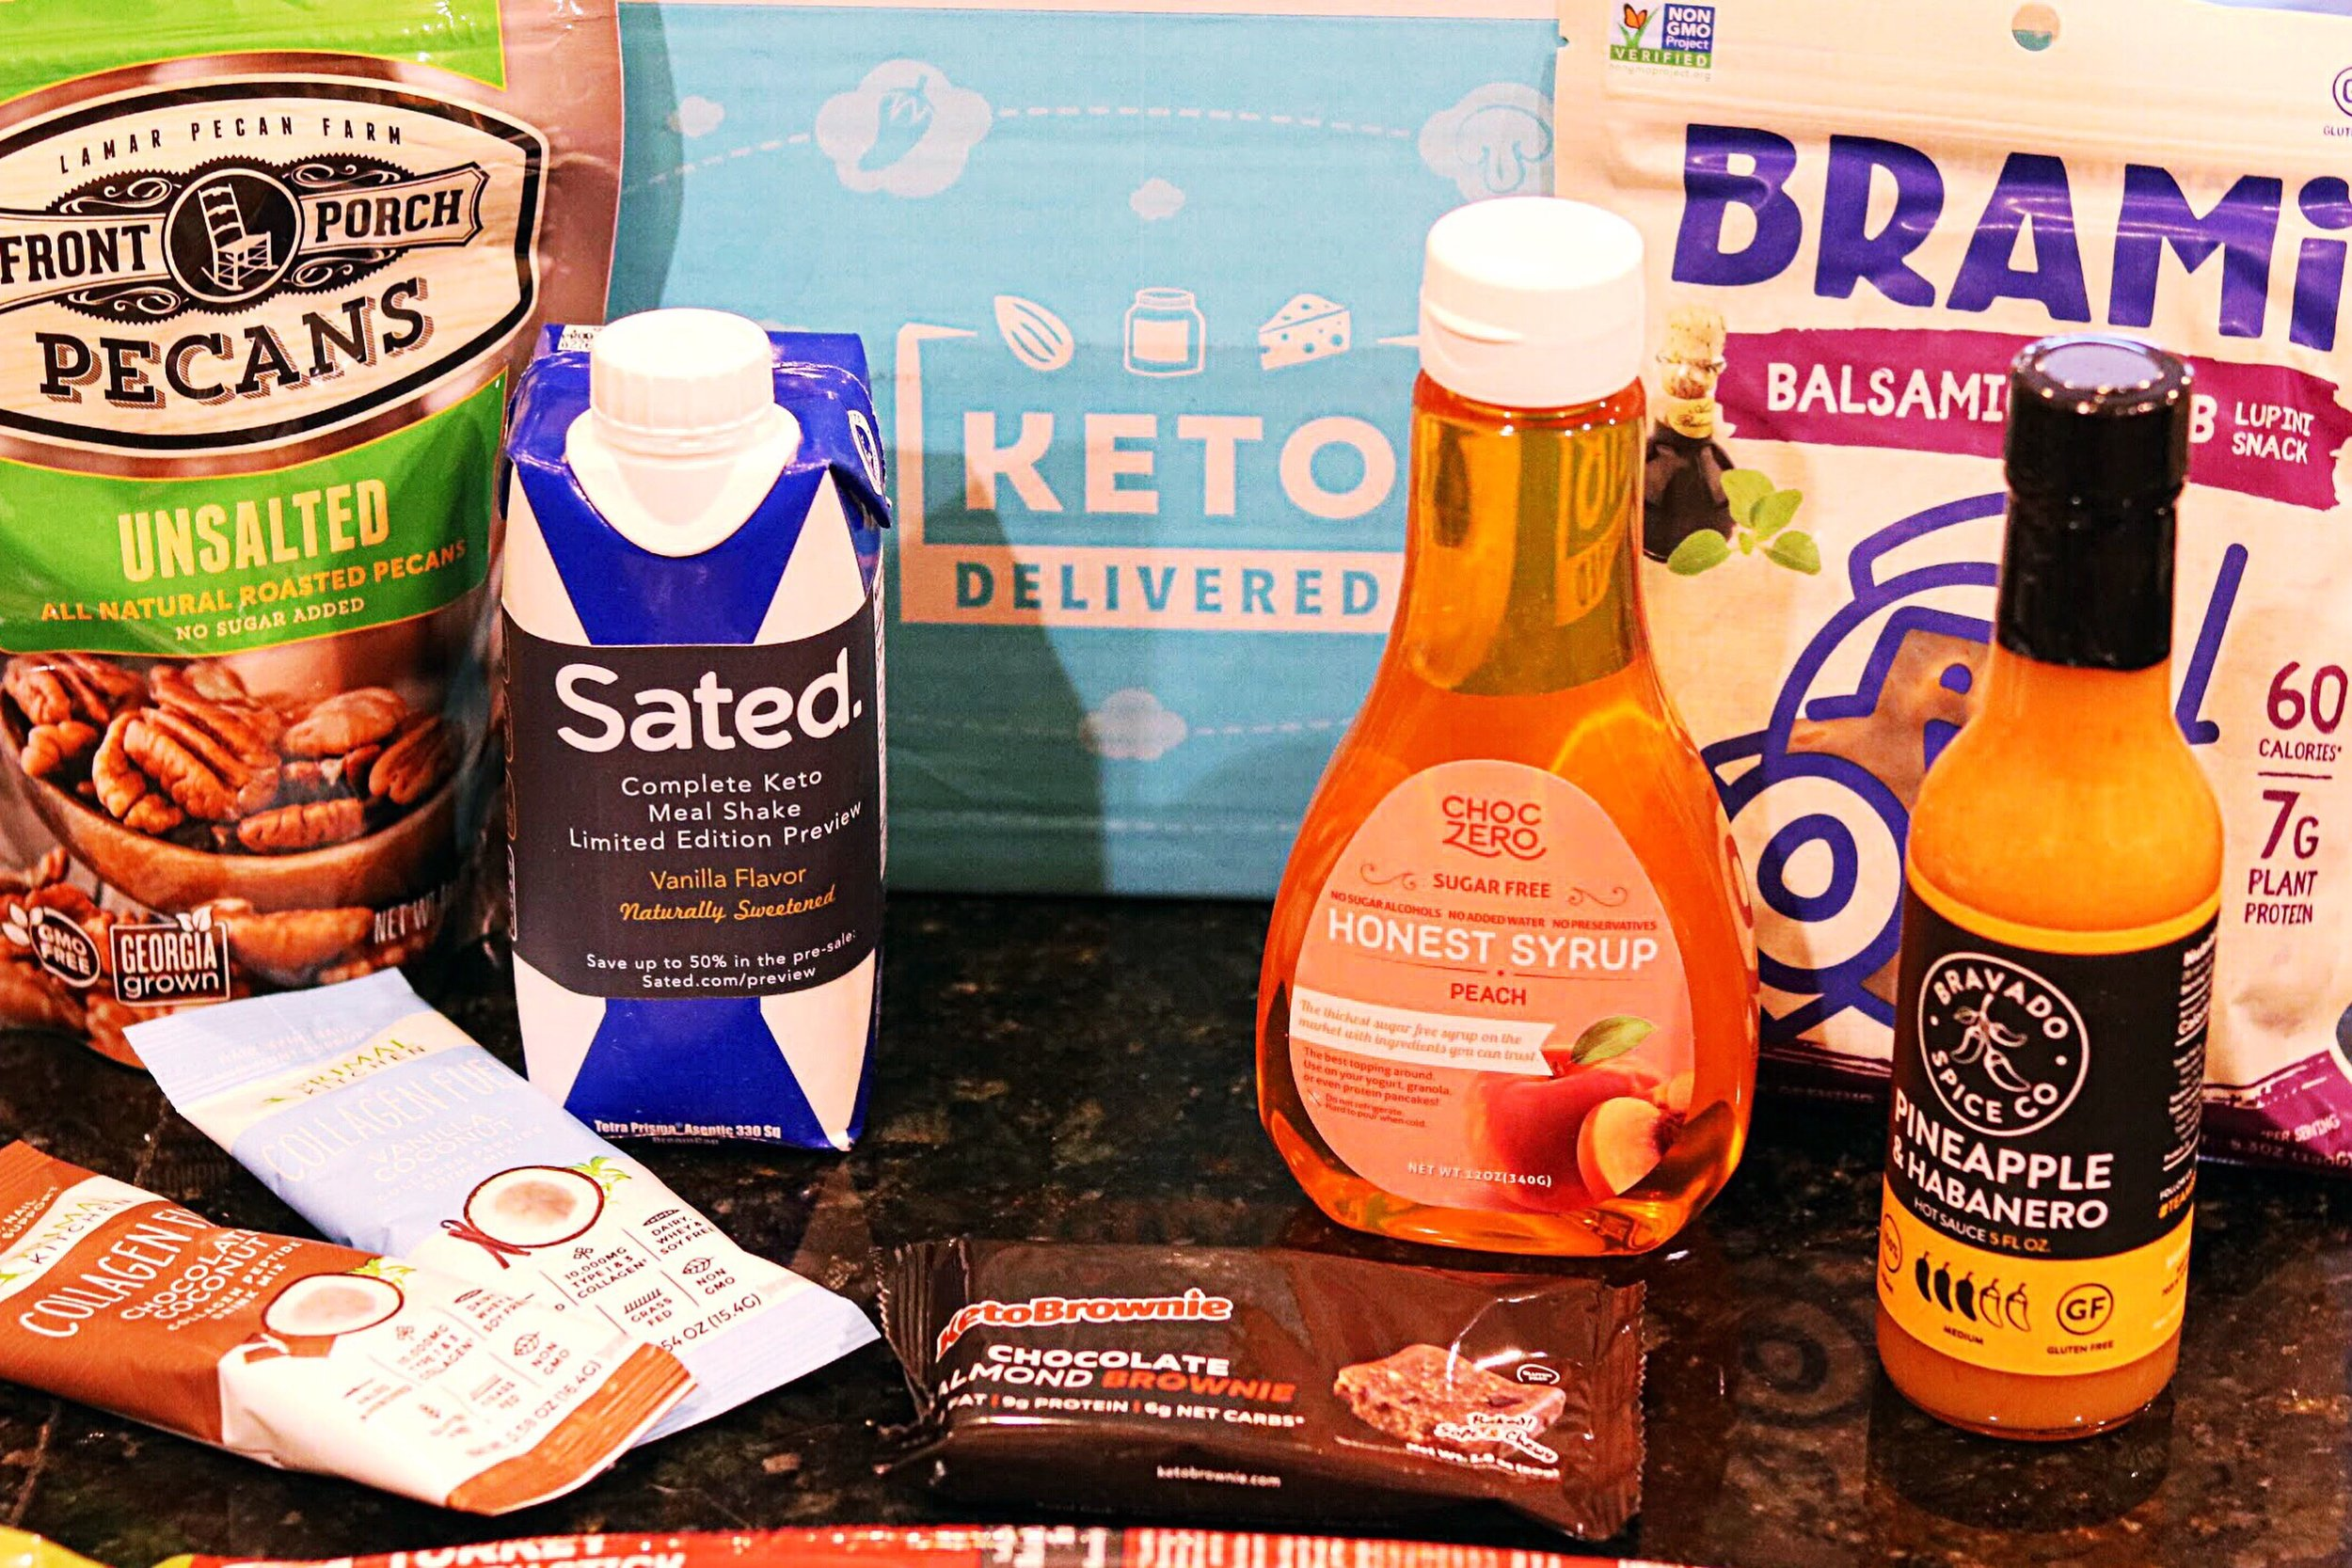 An assortment of items for a monthly keto snack box